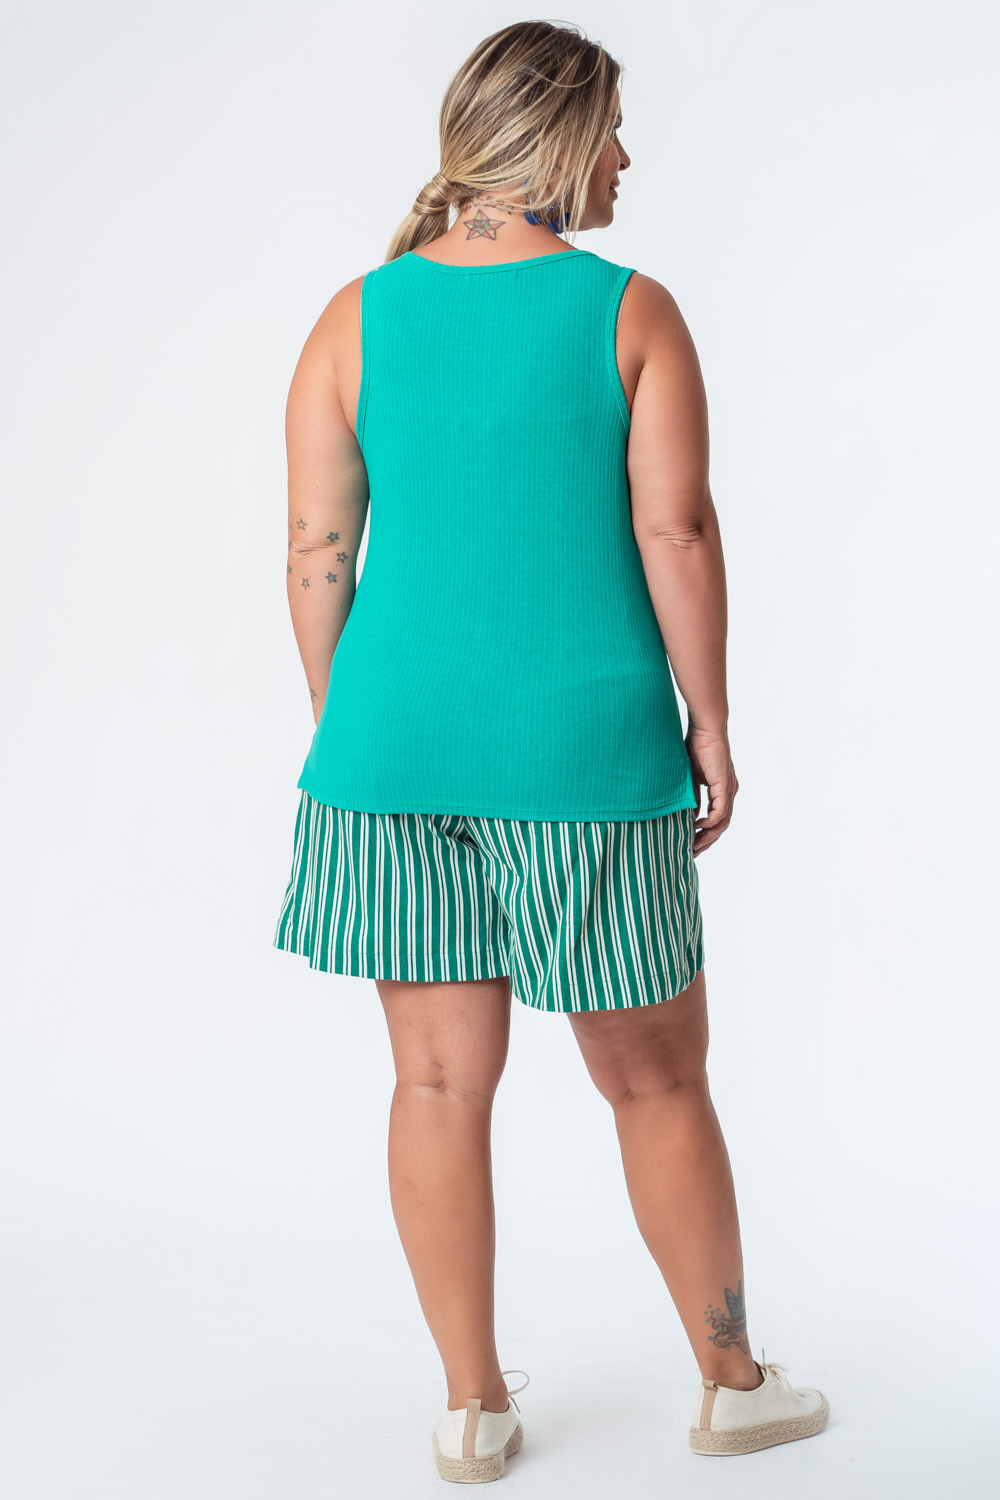 REGATA LISA PLUS SIZE RIB VERDE